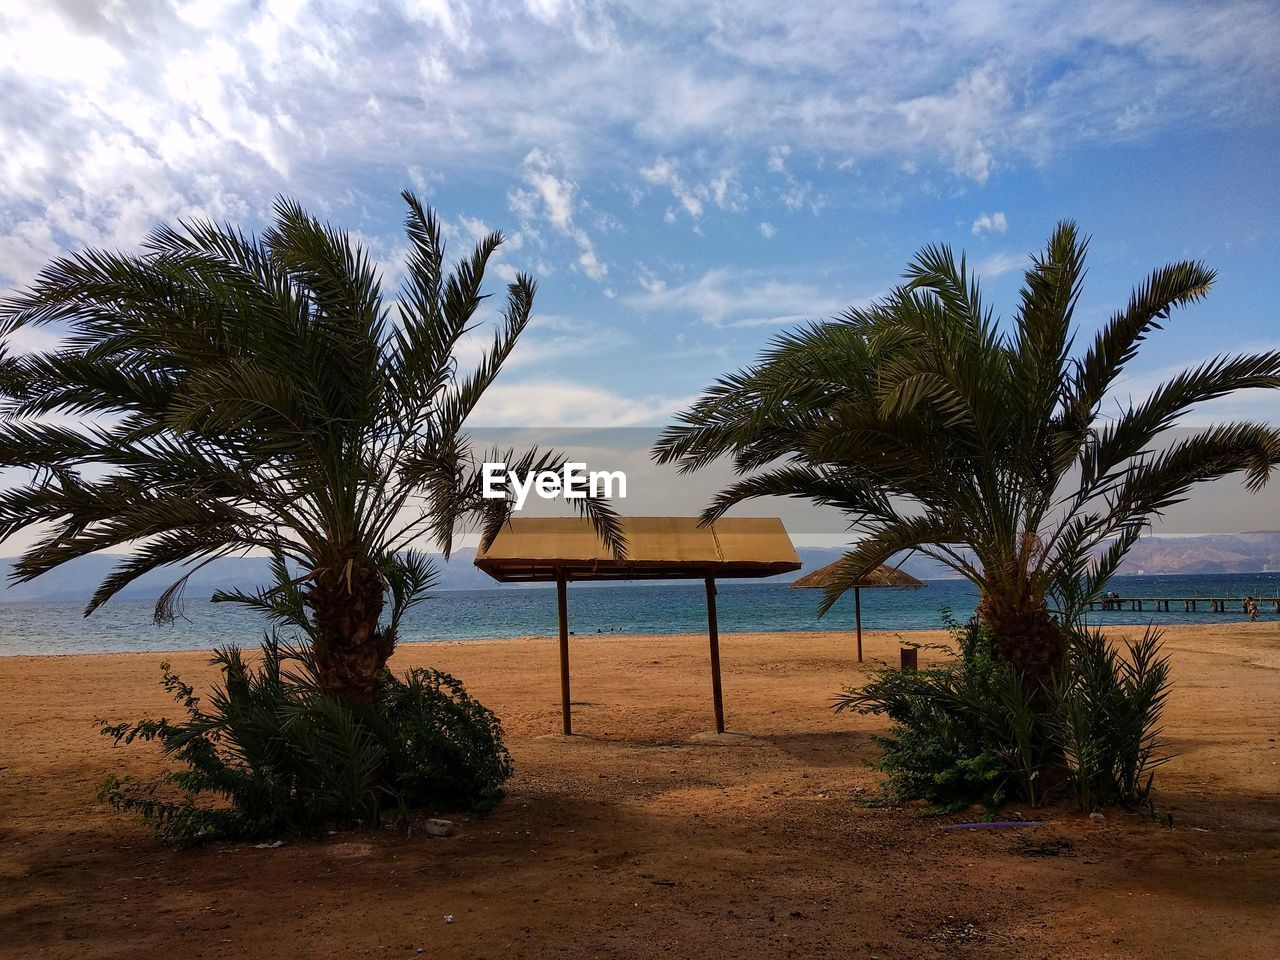 tree, plant, palm tree, tropical climate, sky, water, beach, land, growth, nature, beauty in nature, cloud - sky, sea, scenics - nature, tranquil scene, tranquility, no people, architecture, day, outdoors, horizon over water